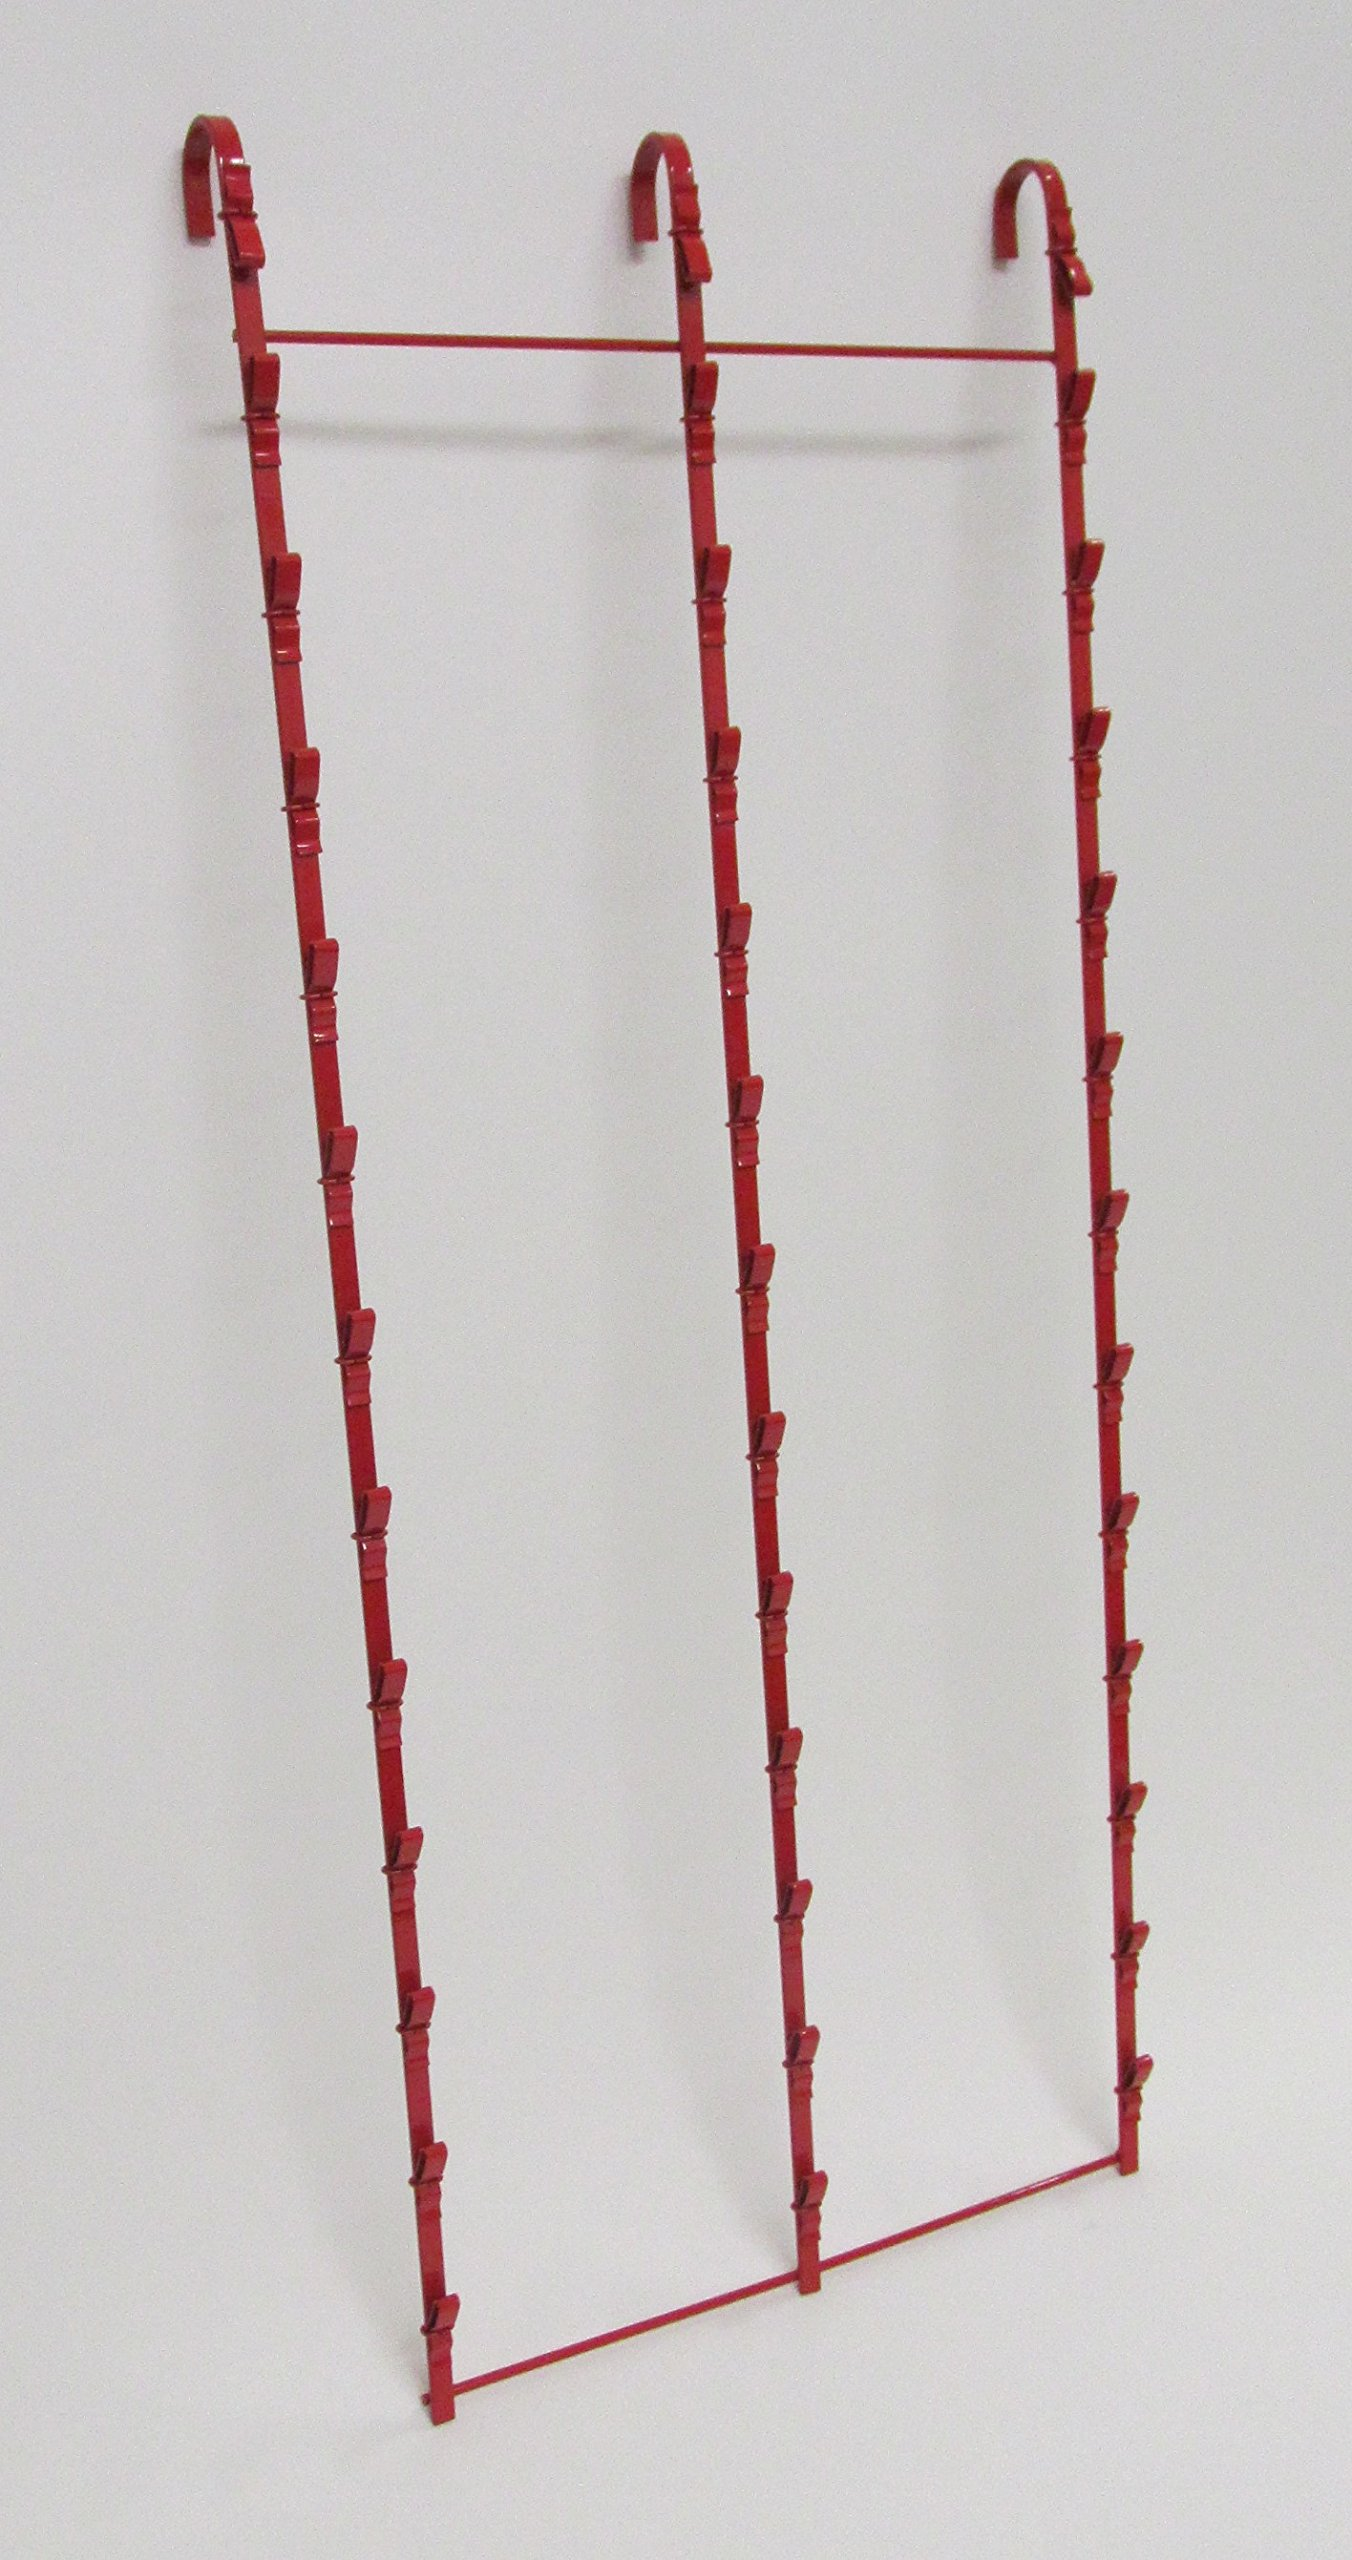 New Retail Hanging Clipper Display Grid Panel Rack 36 Clips Red by Counter Display (Image #4)